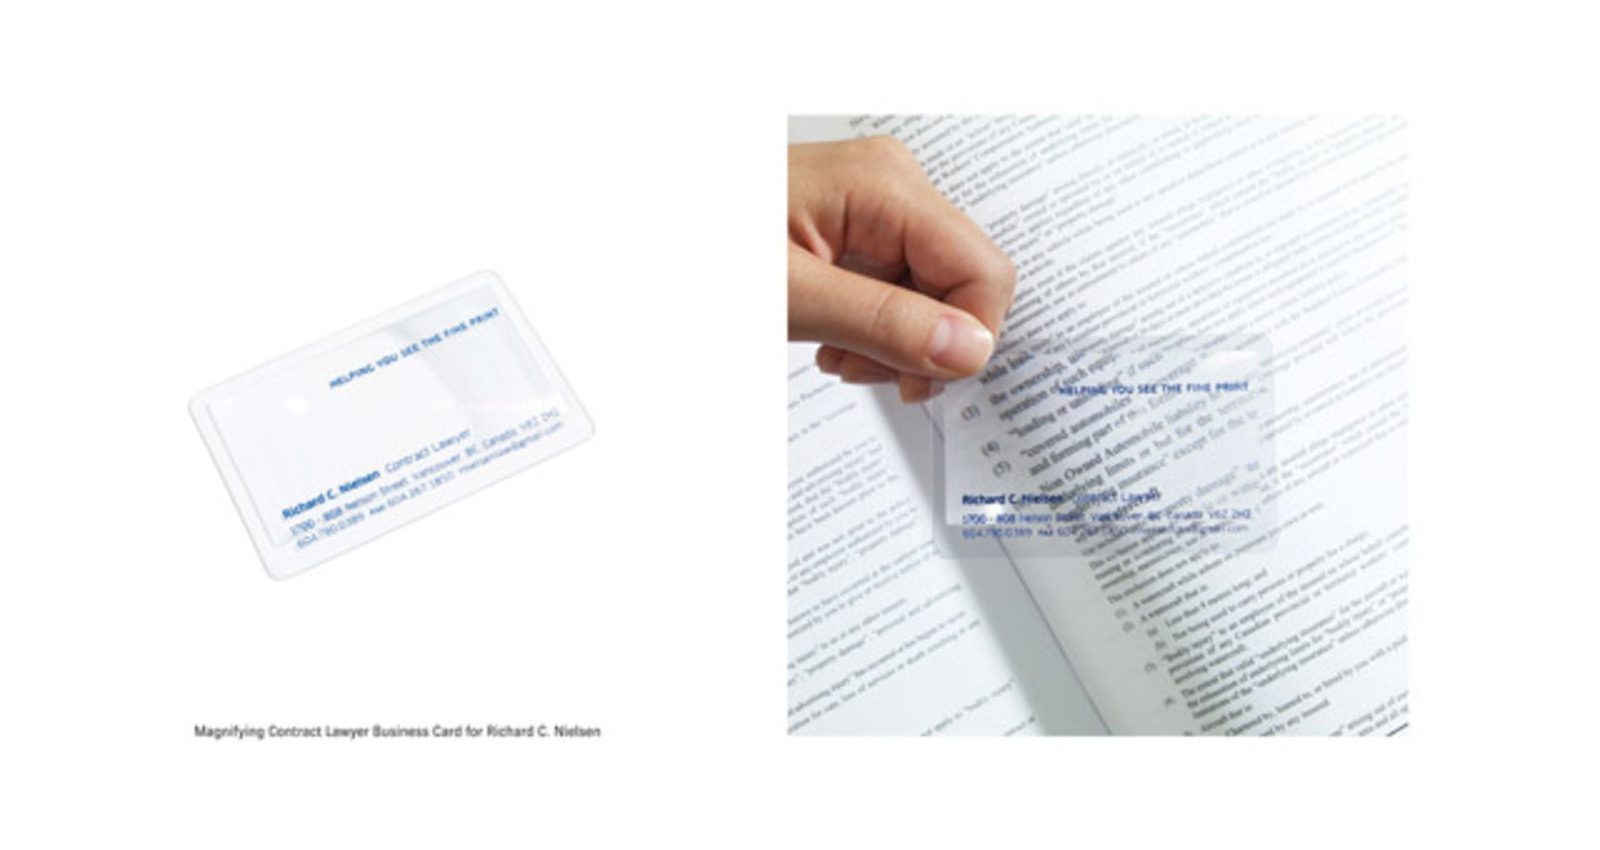 Magnifying Contract Lawyer Business Card